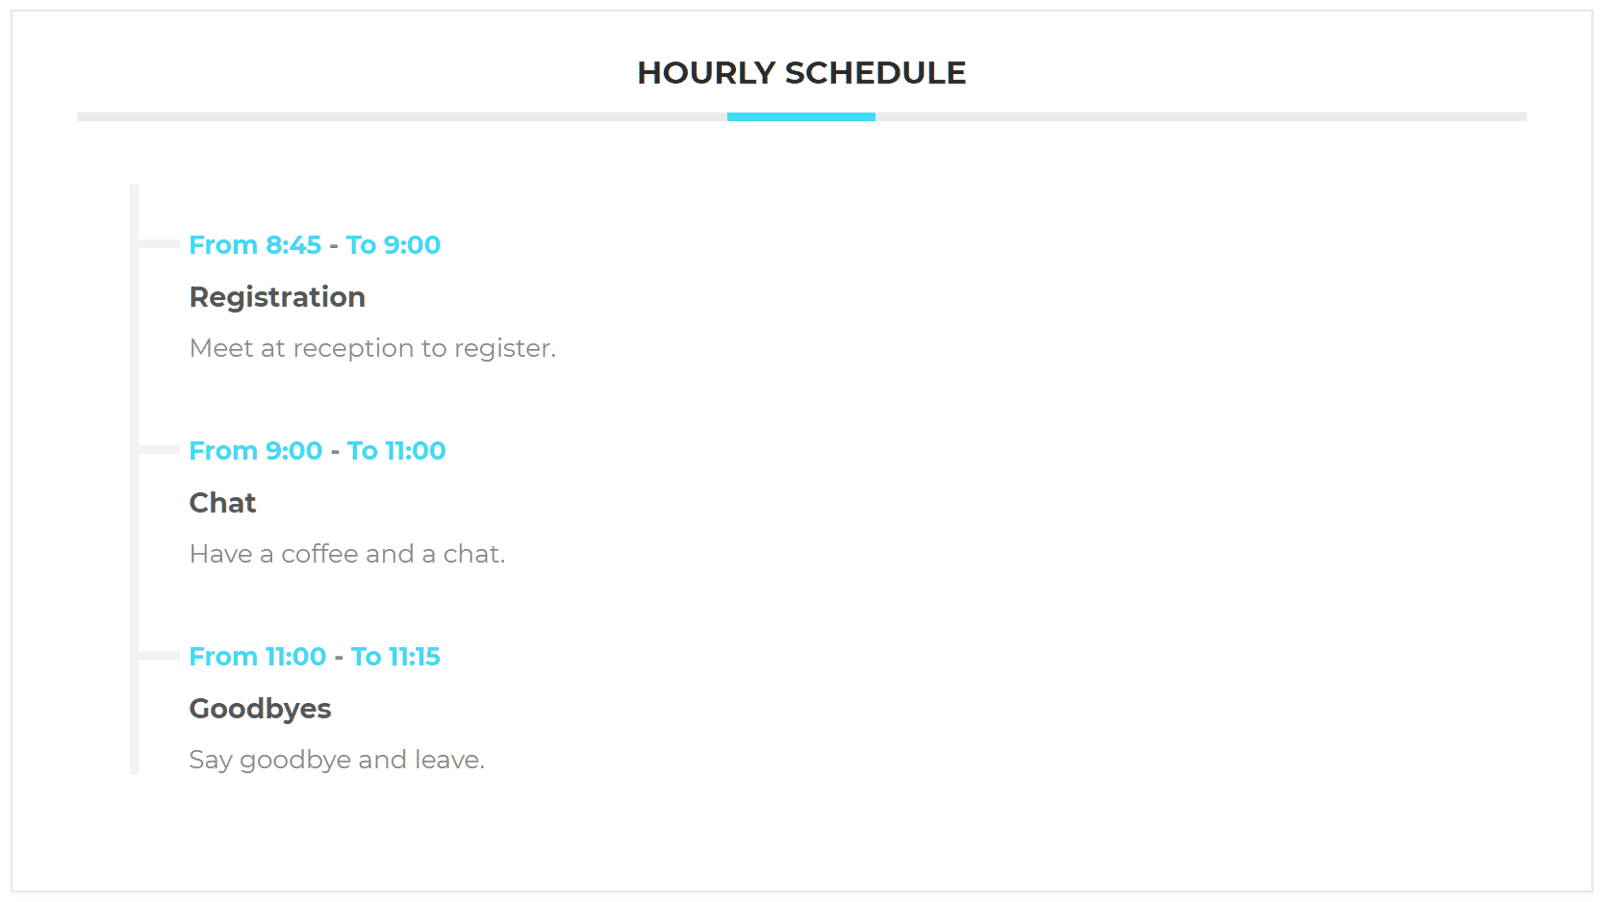 Hourly Schedule